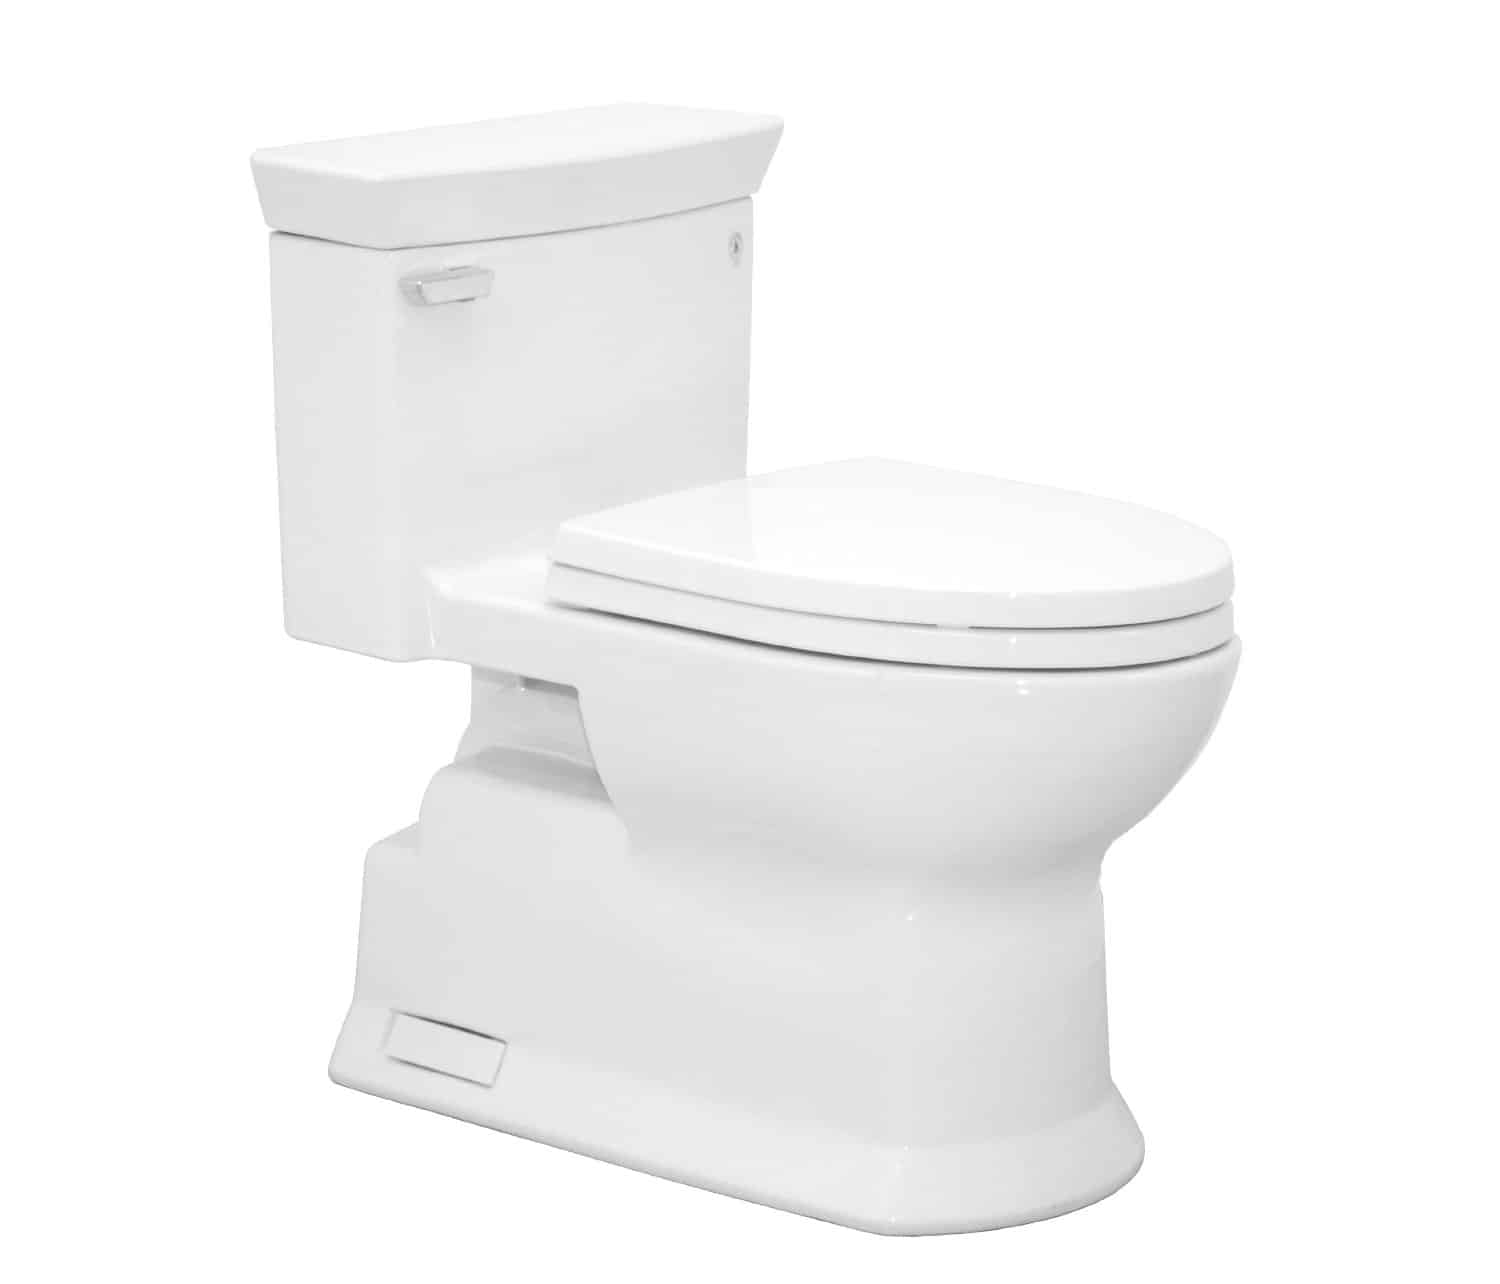 Best toilet on the market reviews - Toto Ms964214cefg 01 Eco Soiree Elongated One Piece Toilet Review